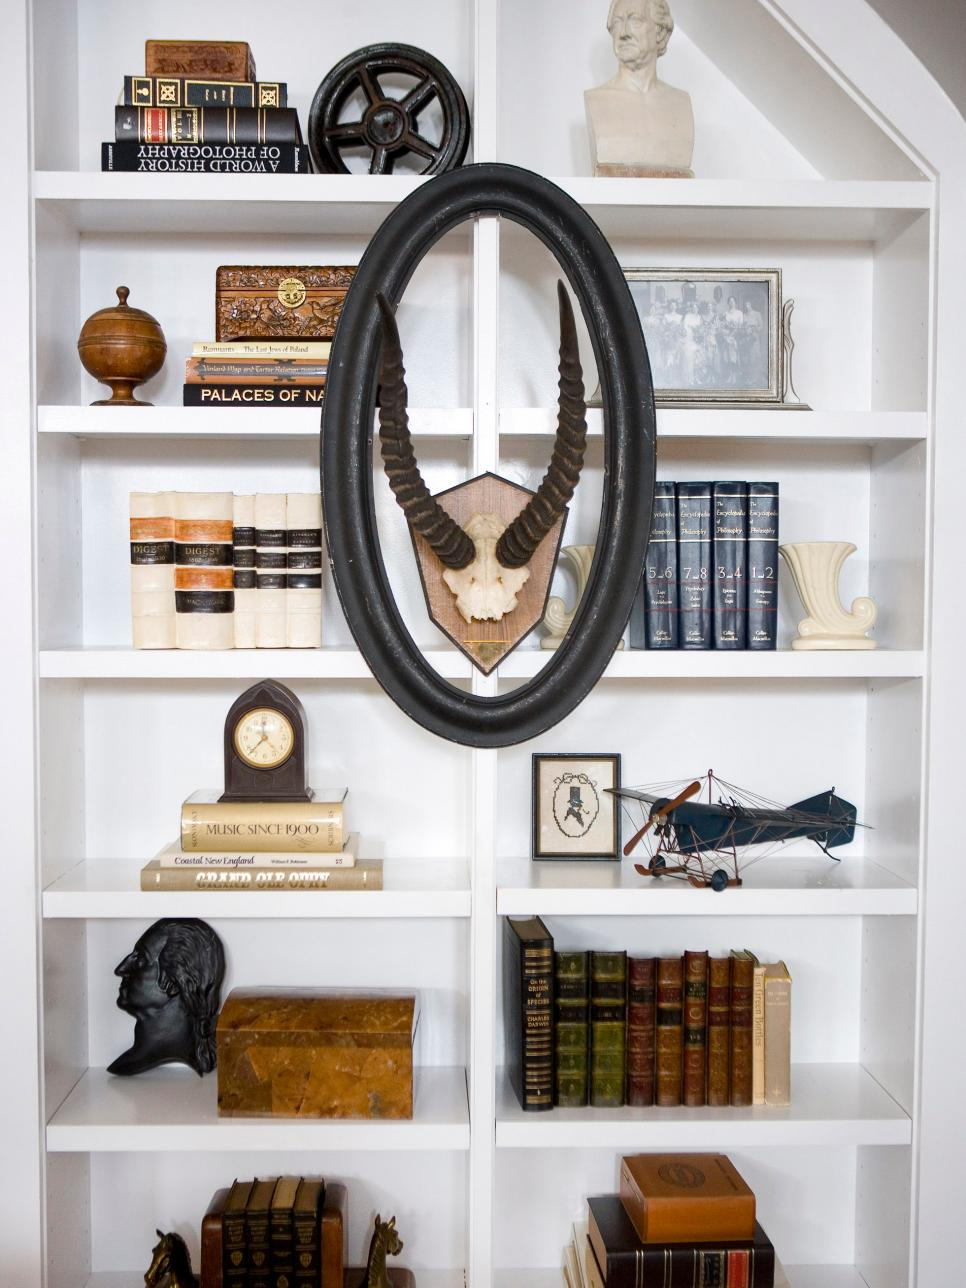 Shelf Decorating Ideas bookshelf and wall shelf decorating ideas | hgtv